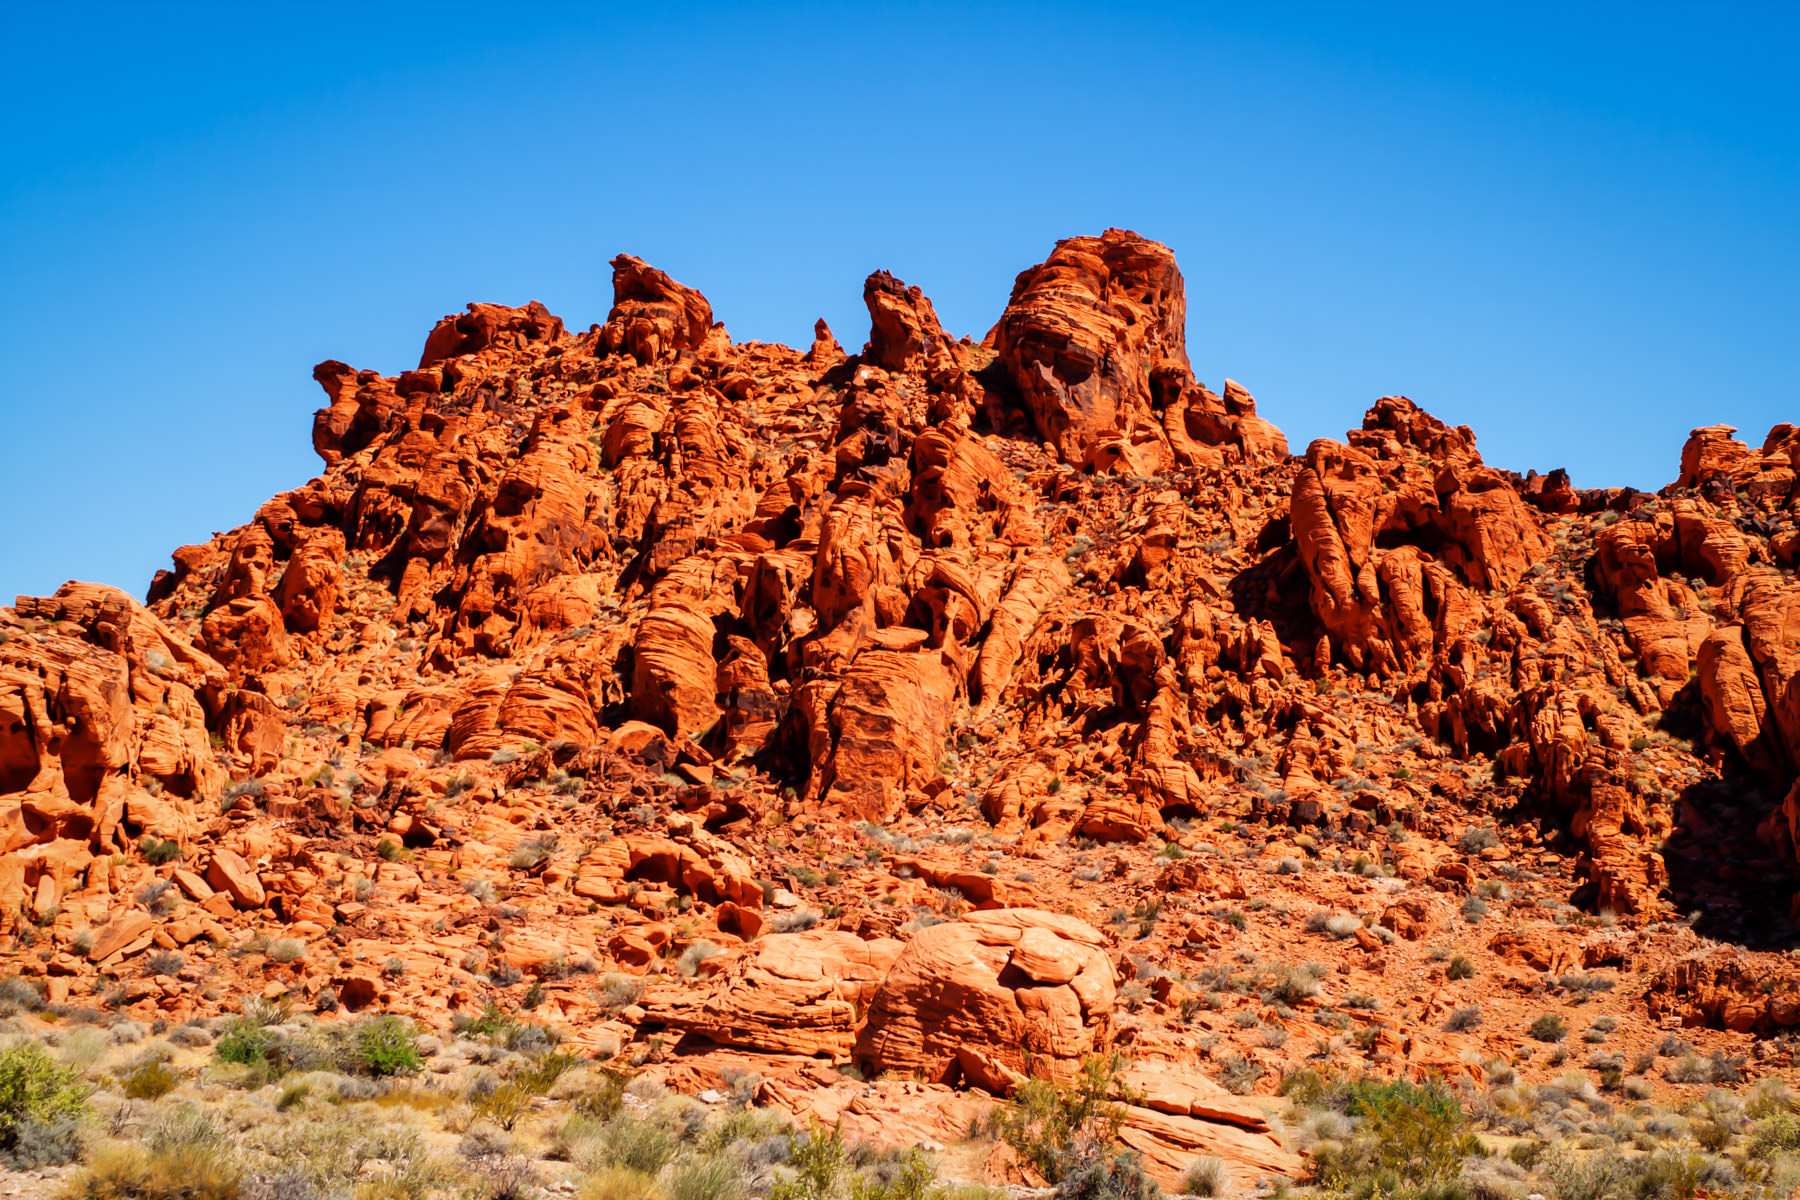 Red rocks rise from the desert at Valley of Fire, Nevada.